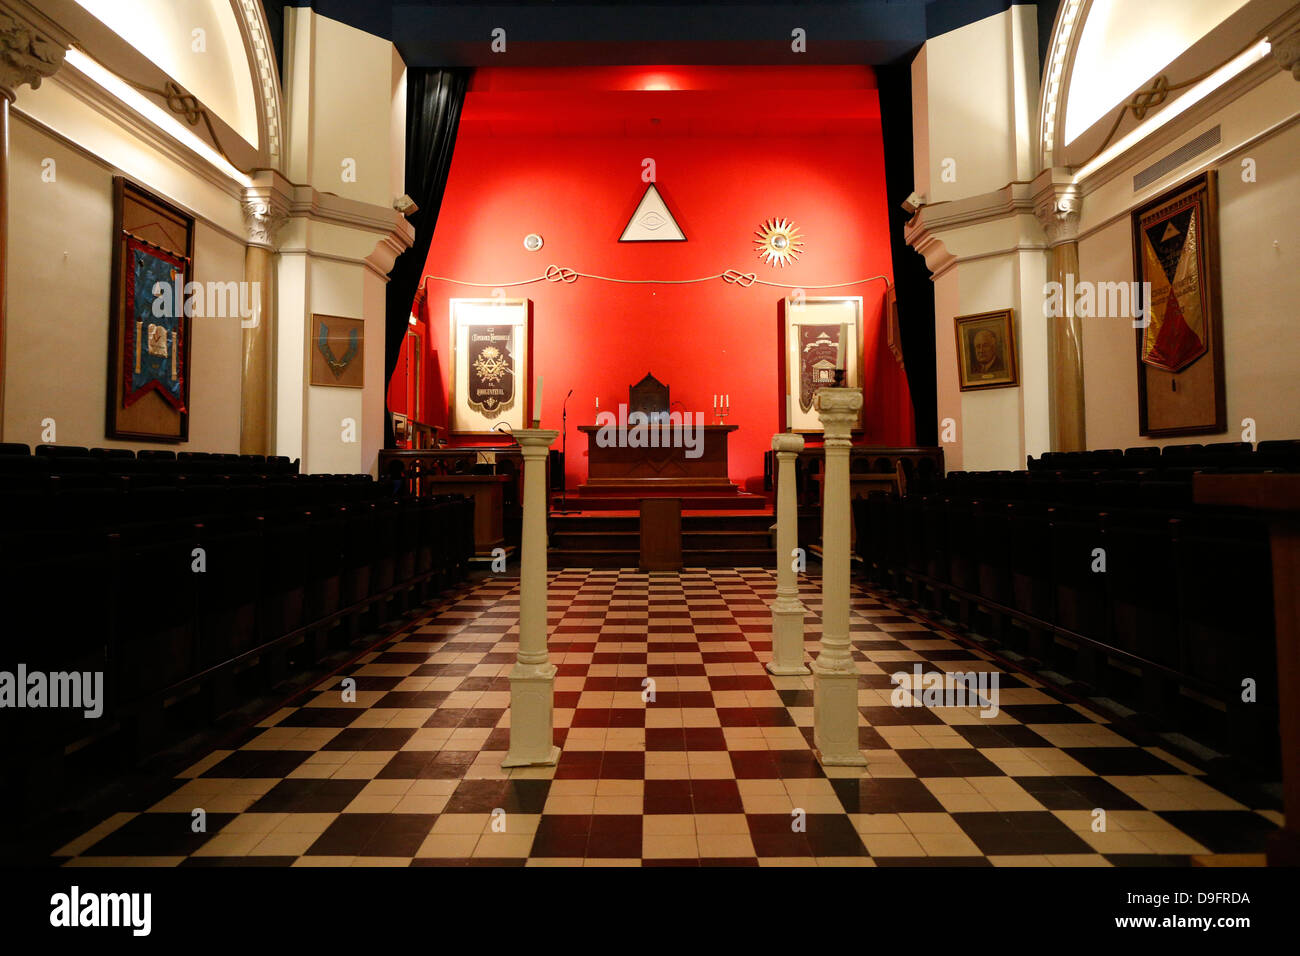 The franklin delano roosevelt masonic lodge room in the grande loge the franklin delano roosevelt masonic lodge room in the grande loge de france paris france sciox Images